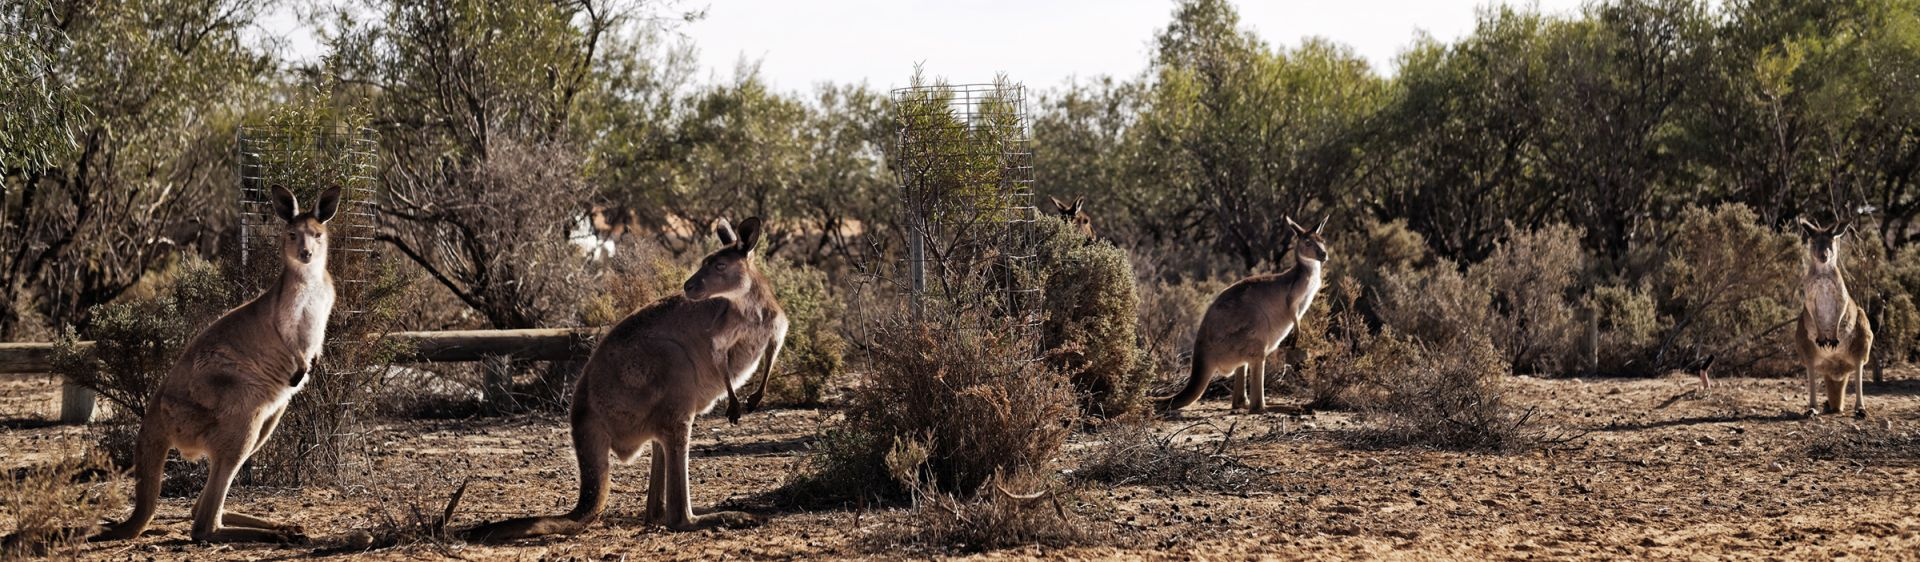 A mob of kangaroos stand among bushland in Mungo National Park, Outback NSW